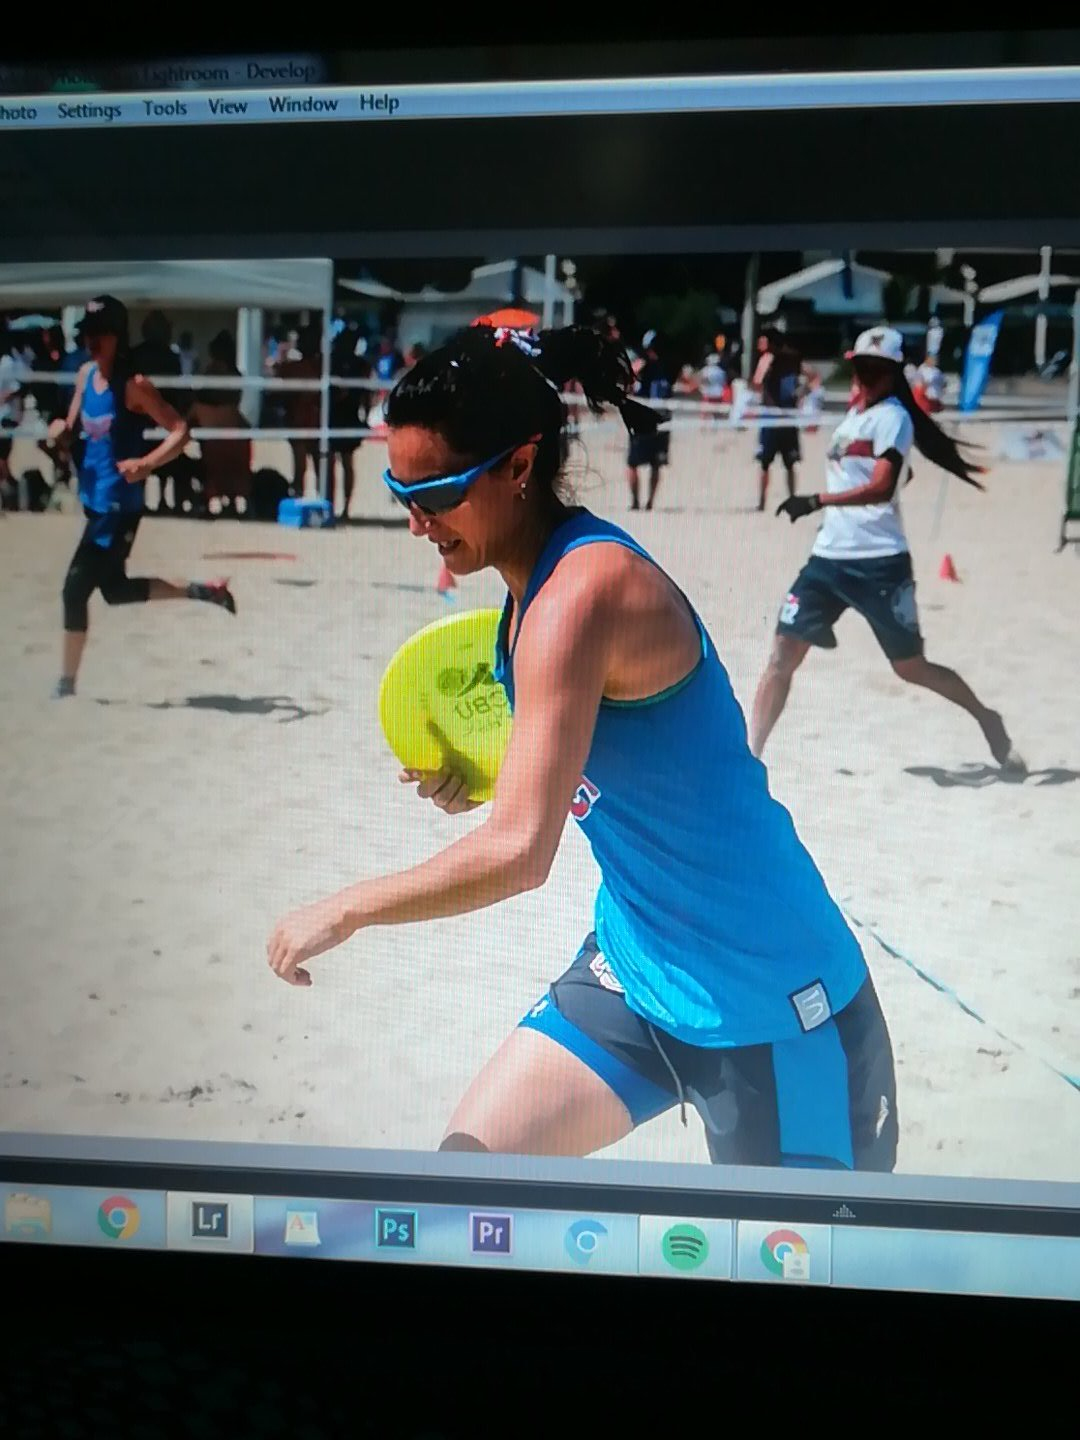 Oh you know... still here. Working. How&#039;s your day been?   #Ultimate #WCBU2017 #Photography #Sportsphotography https://t.co/99Zk8ofw1e <a href='https://twitter.com/donlaczi/status/882162178882588672/photo/1' target='_blank'>See original &raquo;</a>